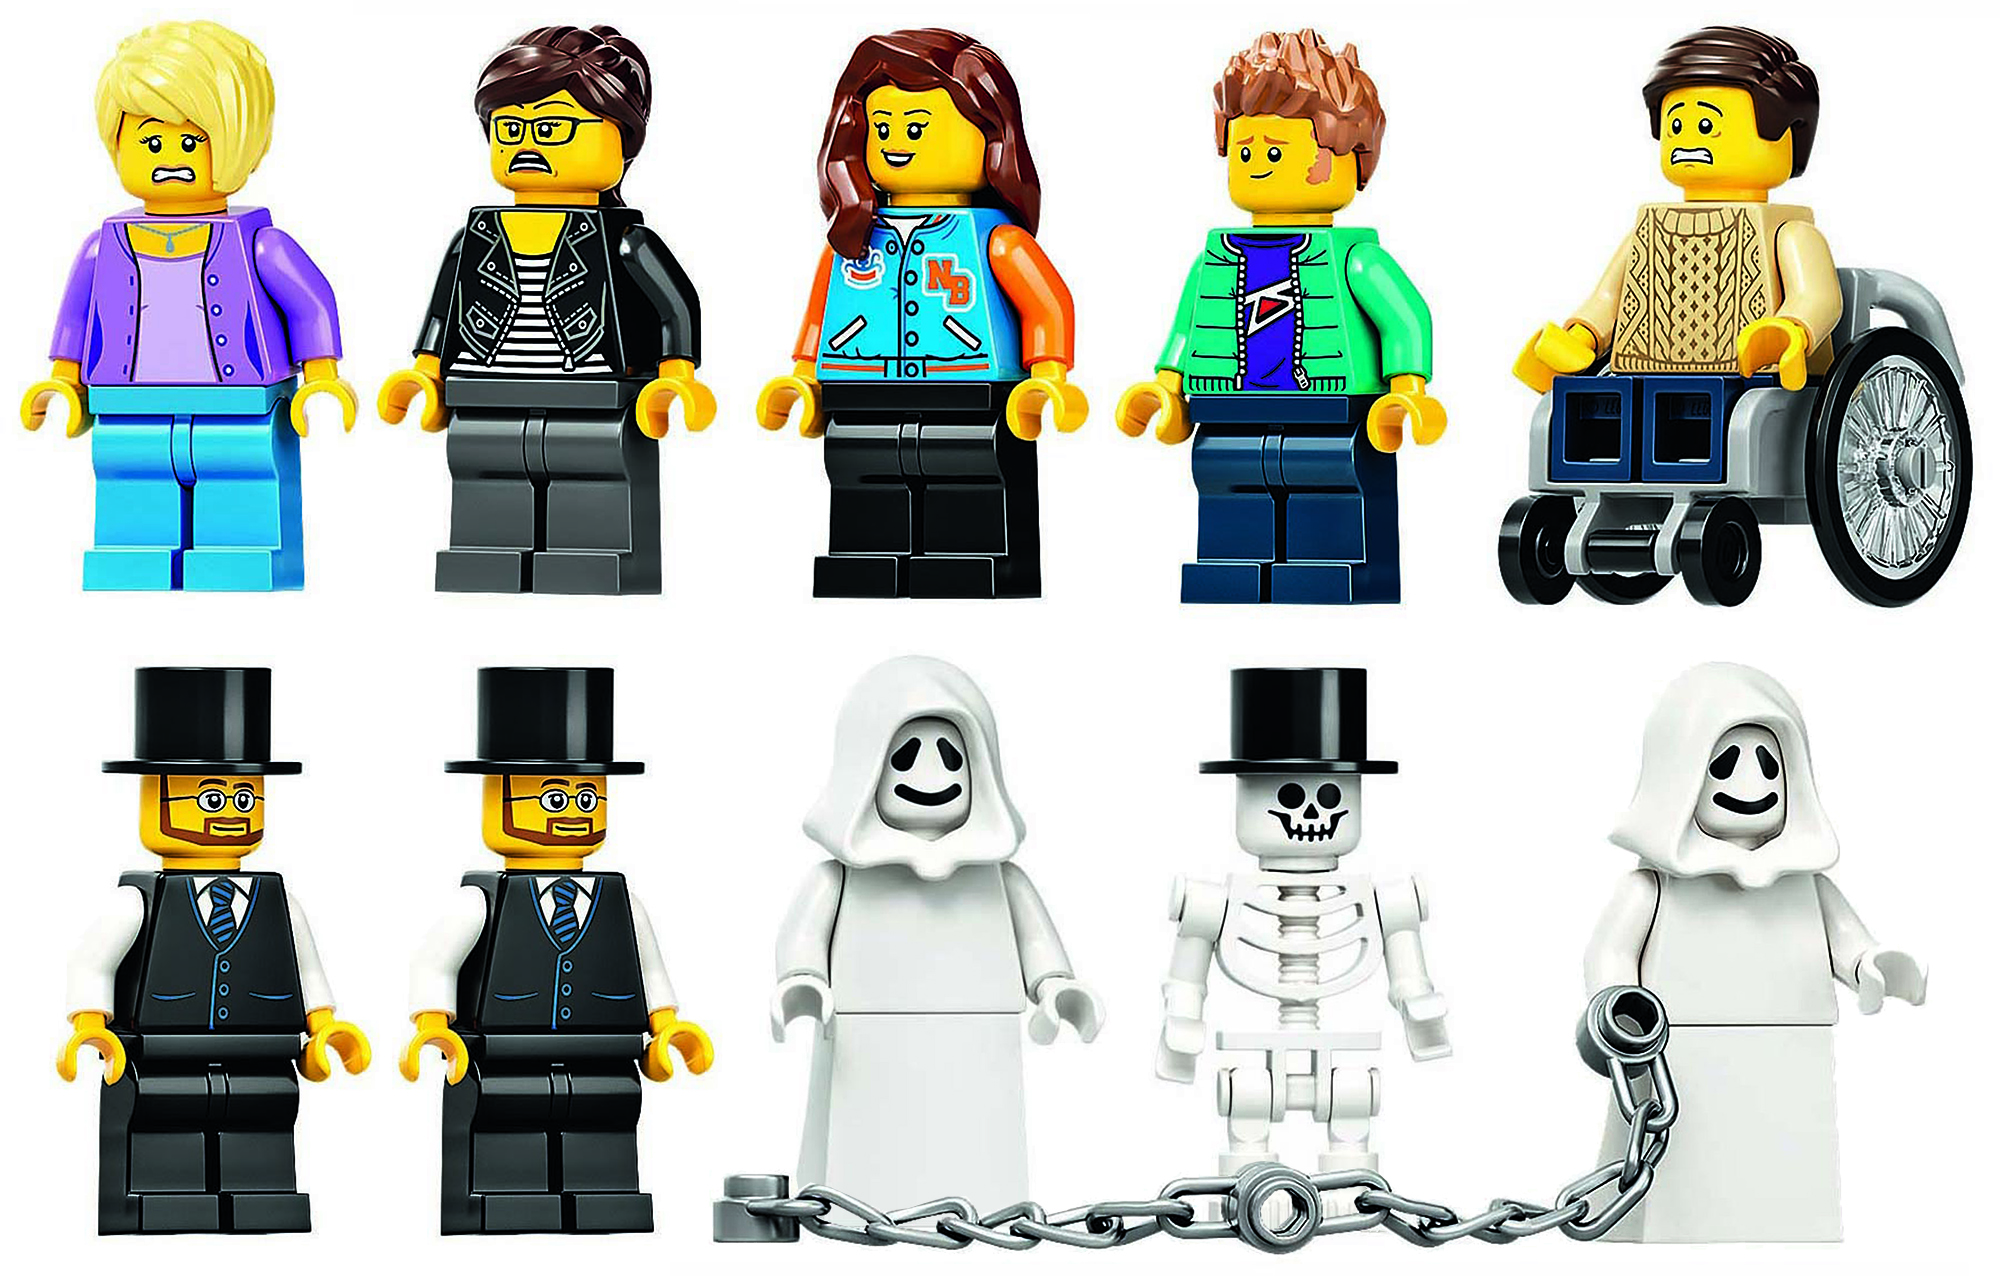 LEGO 10273 Haunted House Minifigures